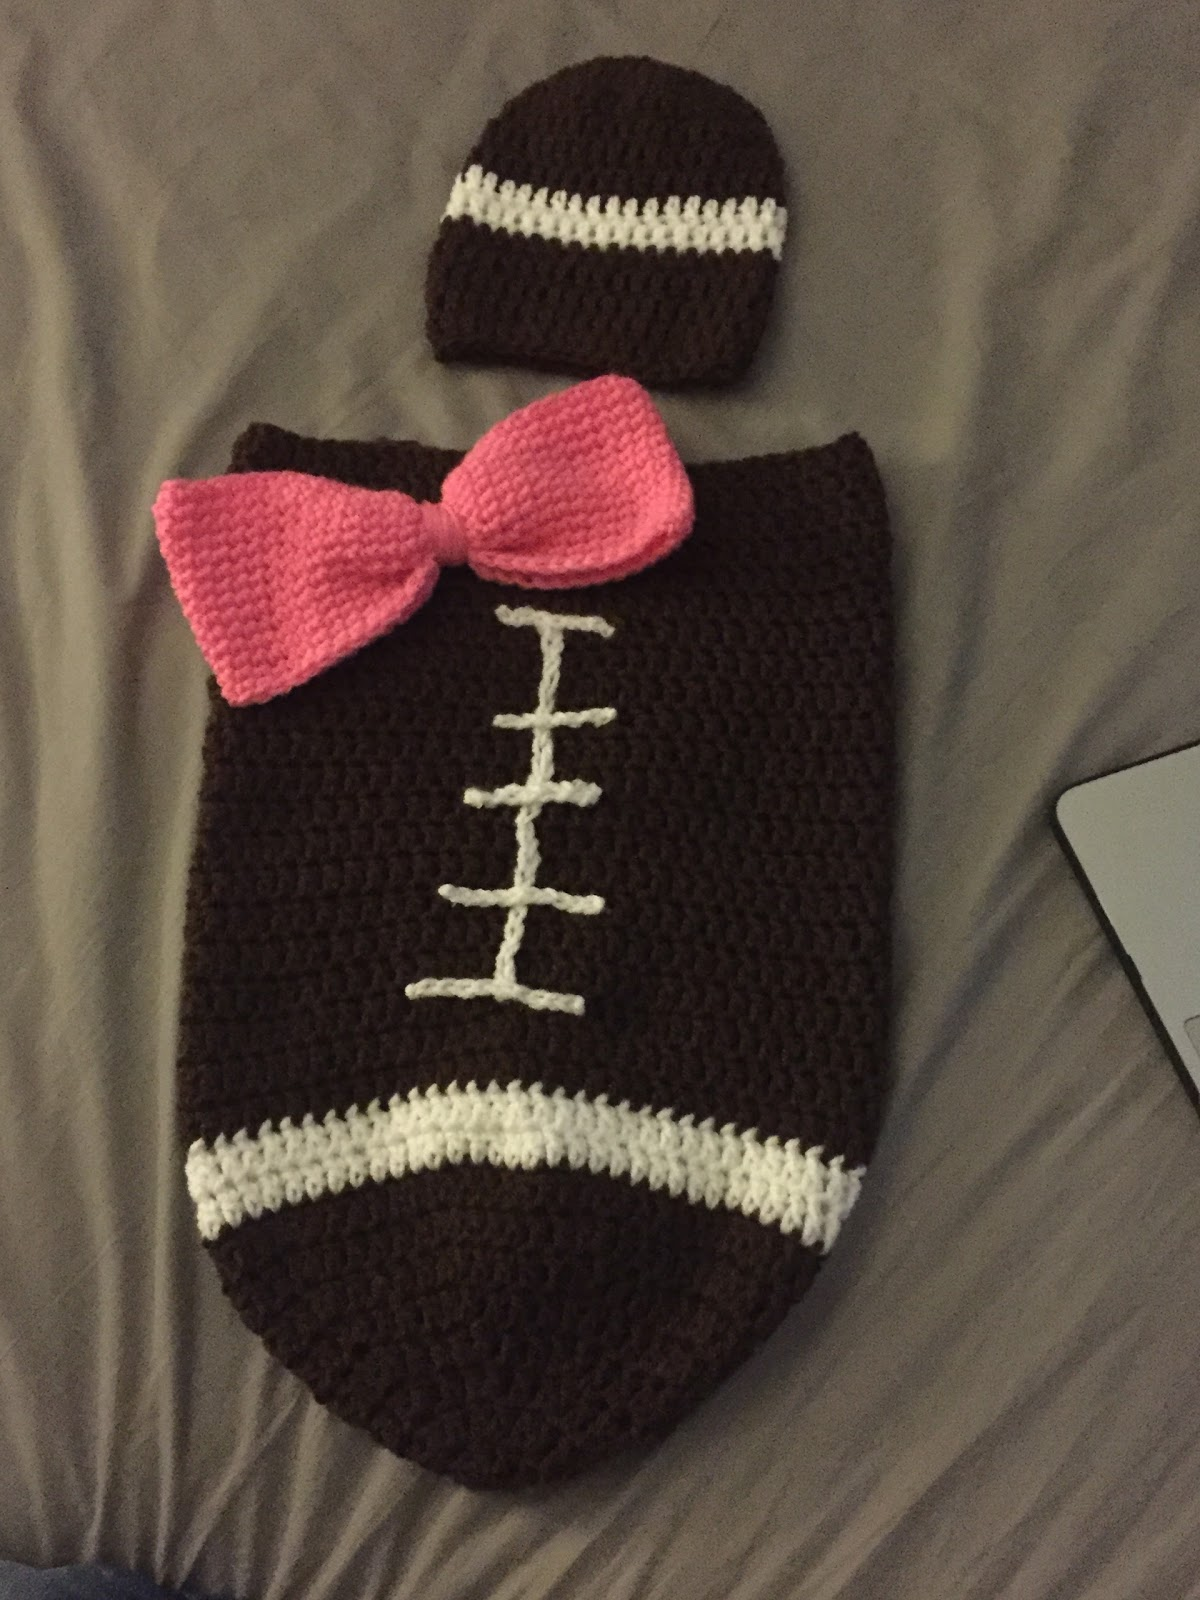 Organic Mom in the Kitchen: Crochet Football Cocoon